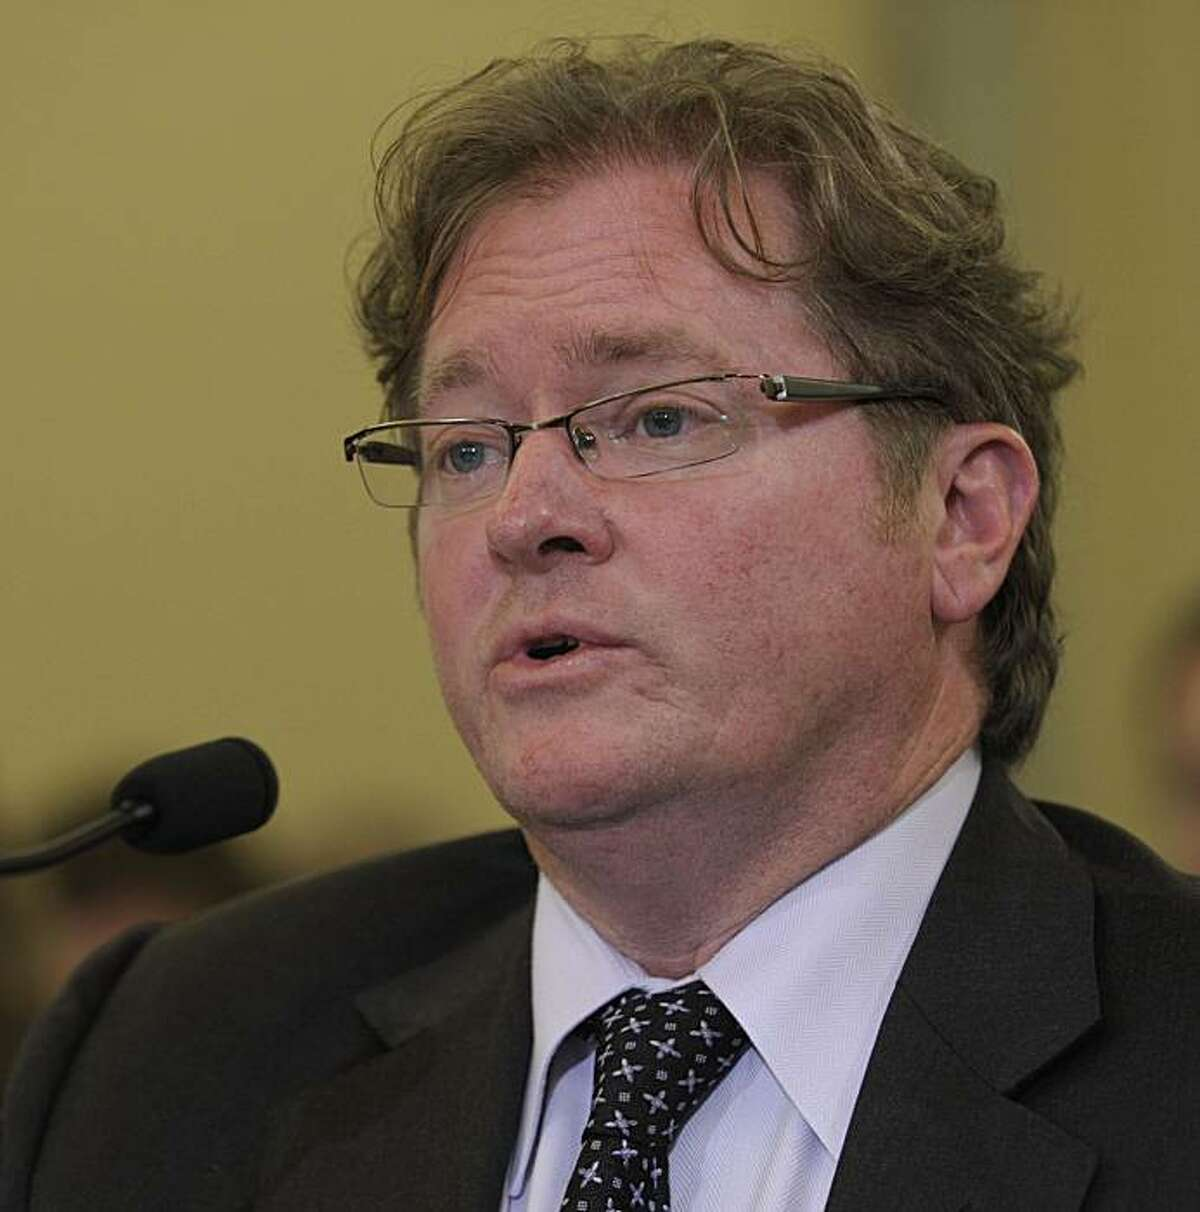 California Public Utilities Commission Executive Director Paul Clanon testifies before the Senate Commerce Committee during a hearing on Capitol Hill in Washington, Tuesday, Sept. 28, 2010, on the San Bruno, Calif., gas pipeline explosion. (AP Photo/Susan Walsh)